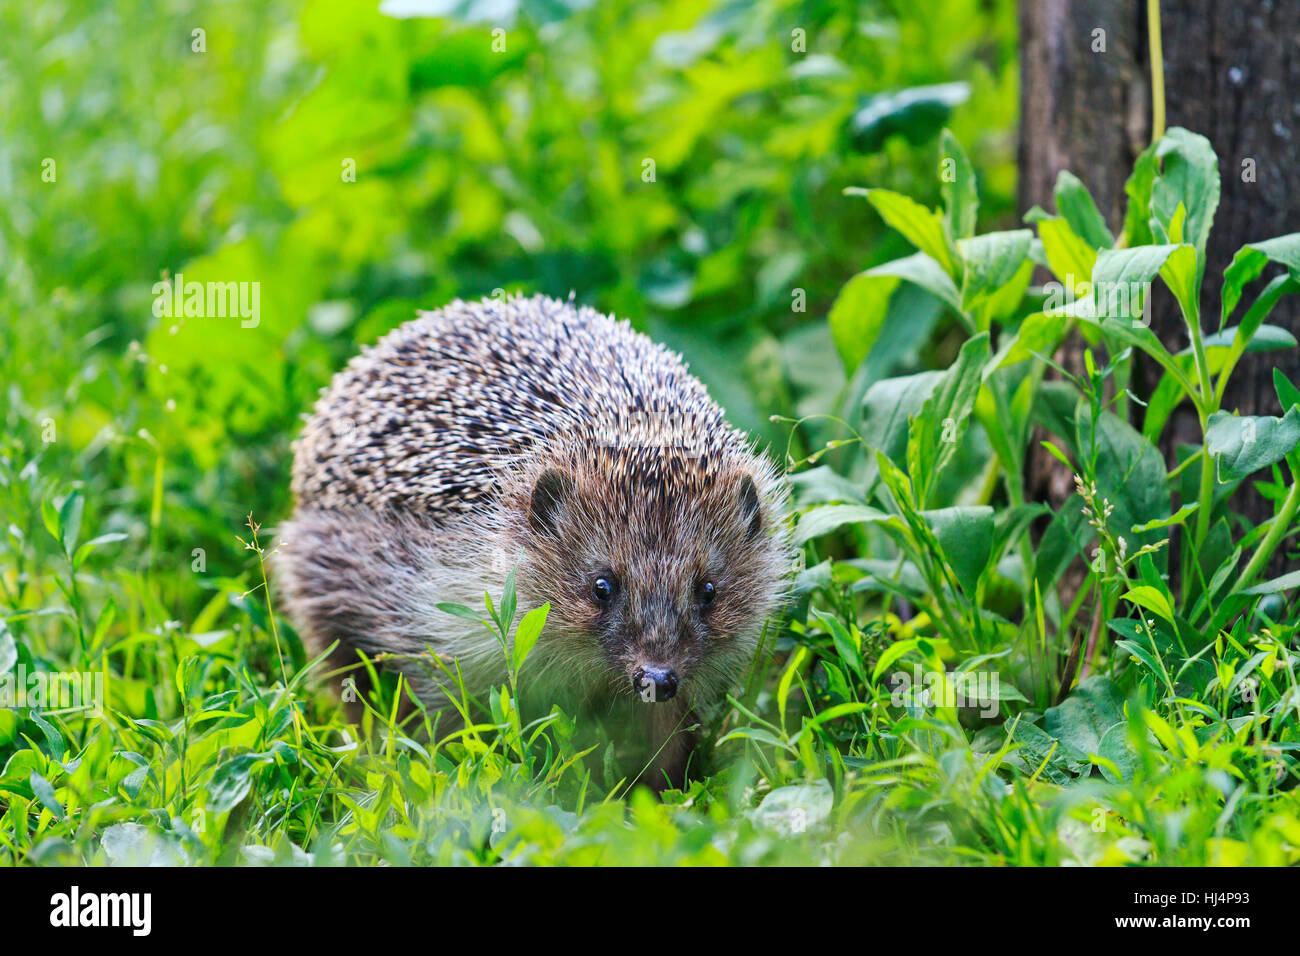 Hedgehog among the green grass in the garden,animals, animal barbed needles, mammals - Stock Image